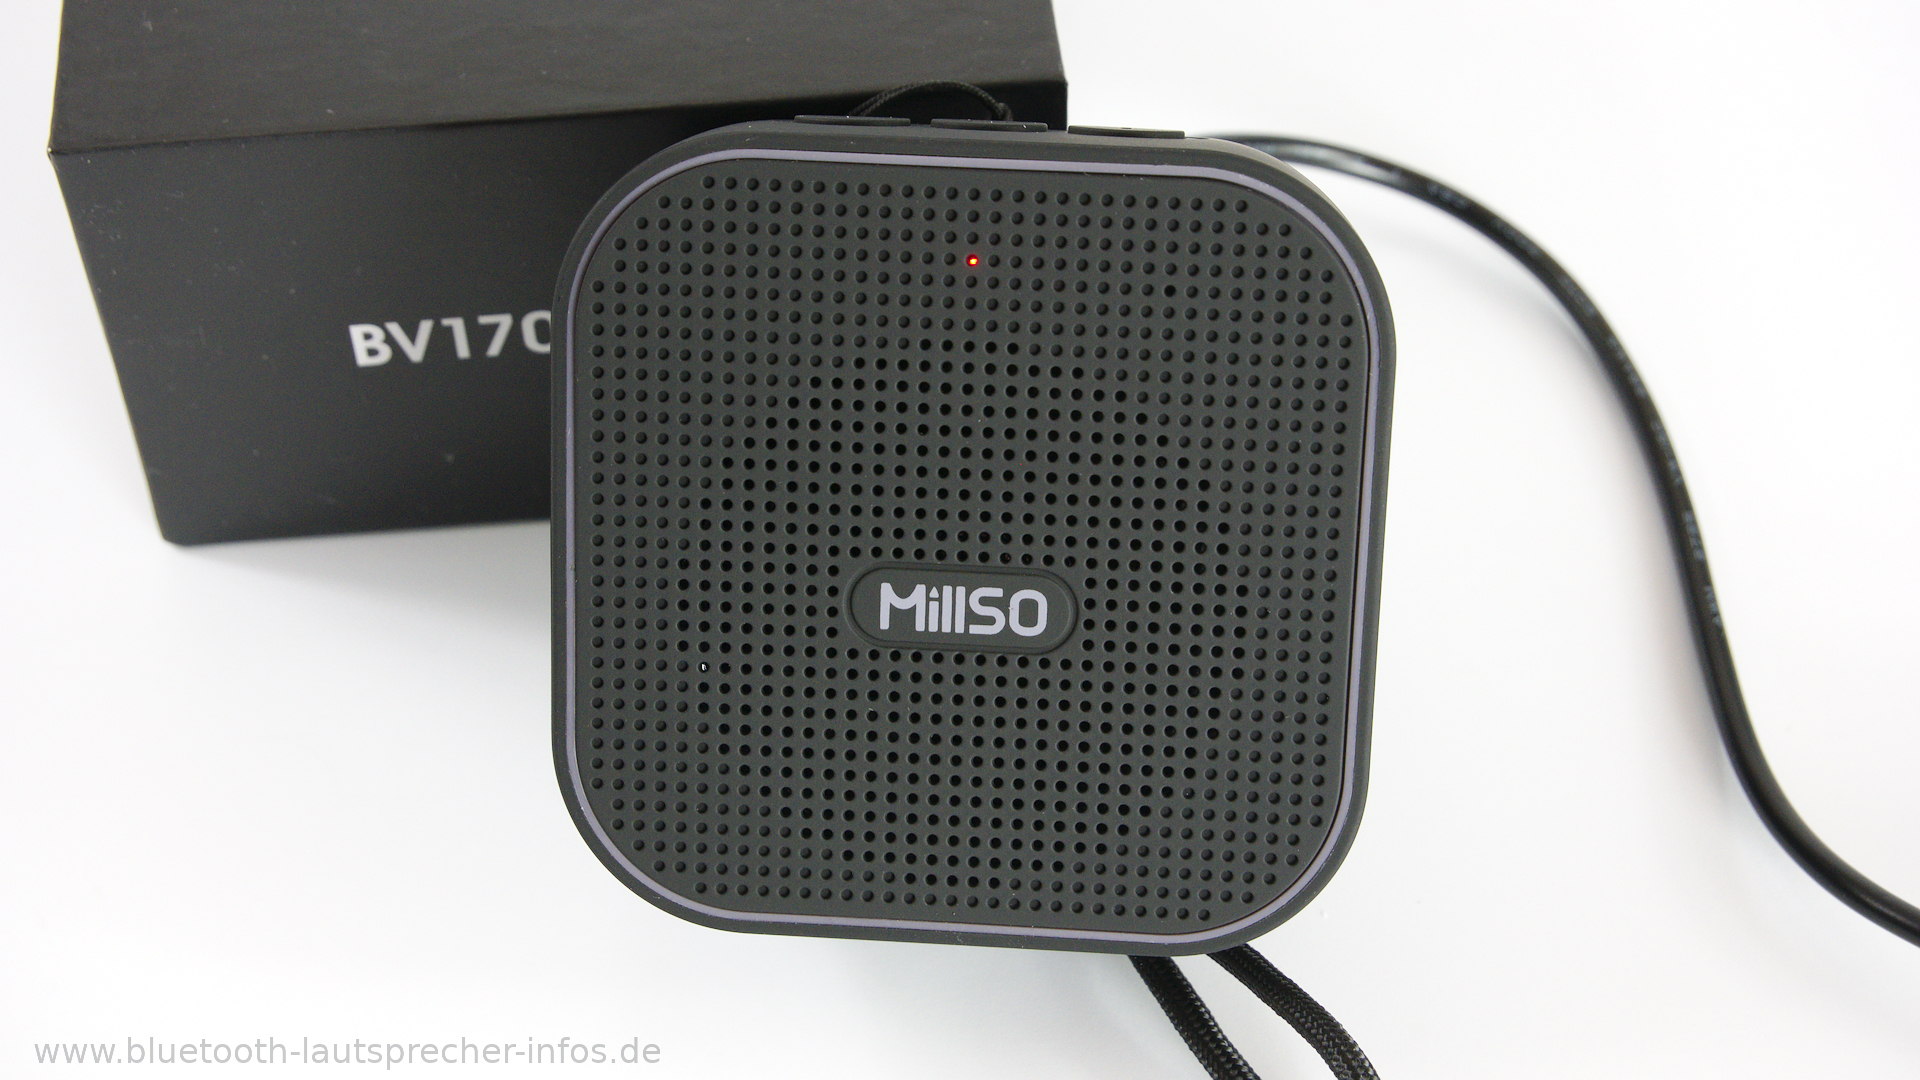 millso bv170 im test sehr preiswerter mini bluetooth. Black Bedroom Furniture Sets. Home Design Ideas